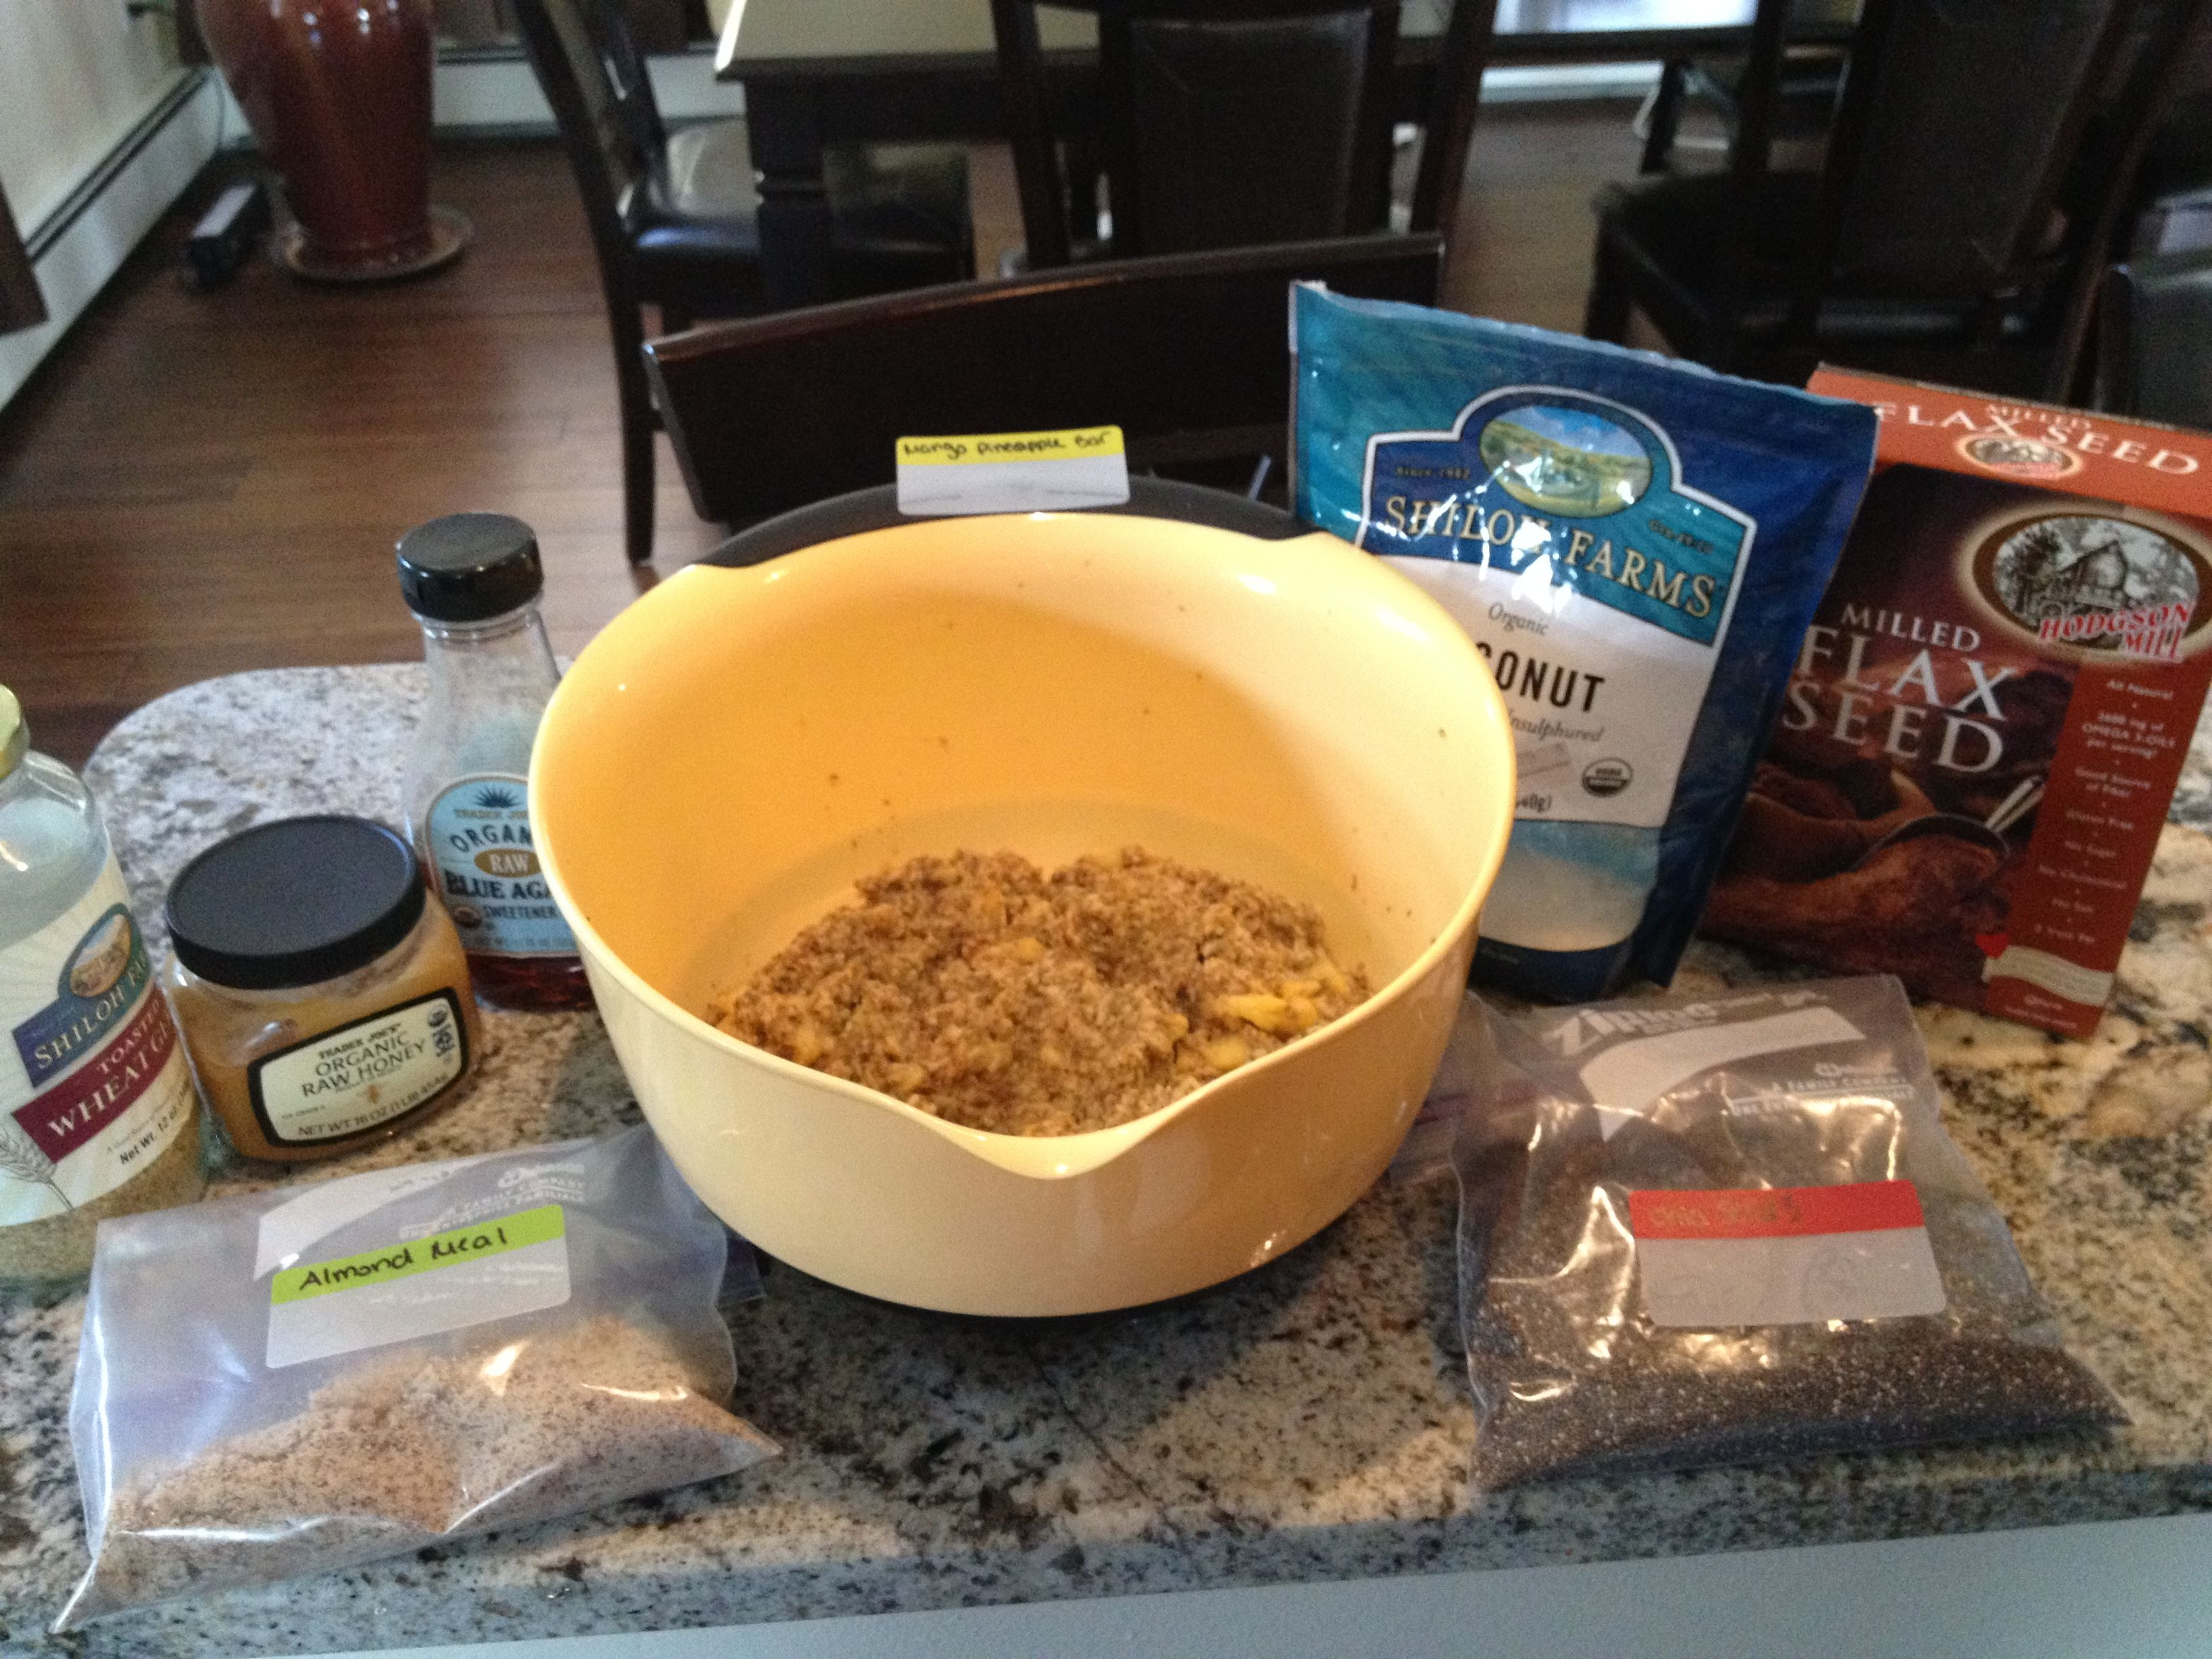 Ingredients in the mango pineapple batter: raw almond meal (works as flour substitute), flax meal (works as egg substitute), unsweetened coconut, raw agave and raw honey (sugar substitute), wheat germ, chia seeds (creates a gelatinous texture when added to liquid and helps bind the ingredients), and fresh pureed mango and pineapple